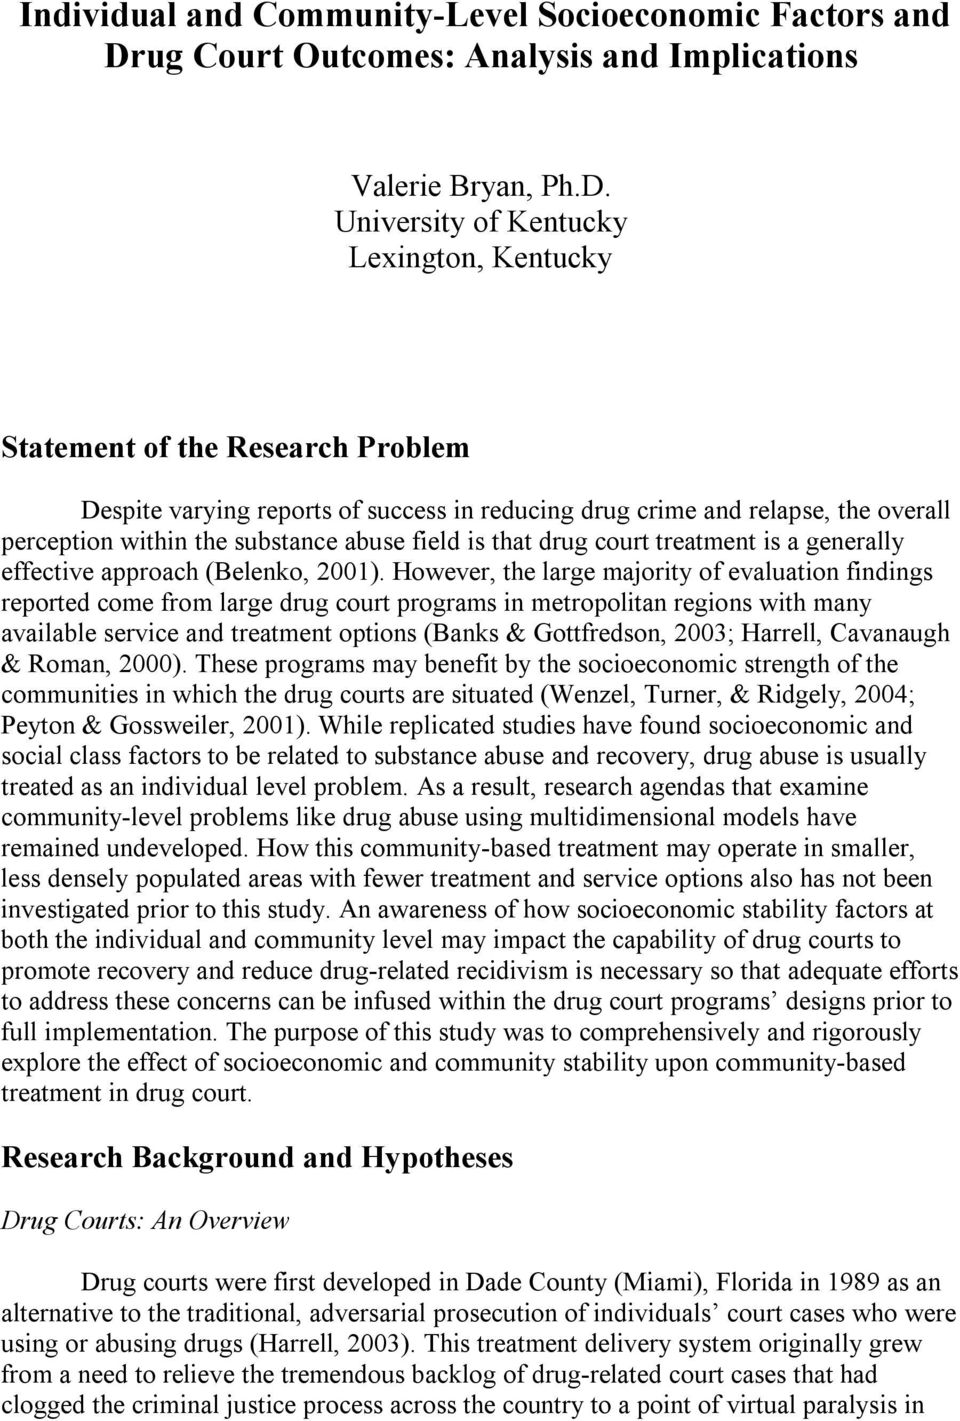 University of Kentucky Lexington, Kentucky Statement of the Research Problem Despite varying reports of success in reducing drug crime and relapse, the overall perception within the substance abuse